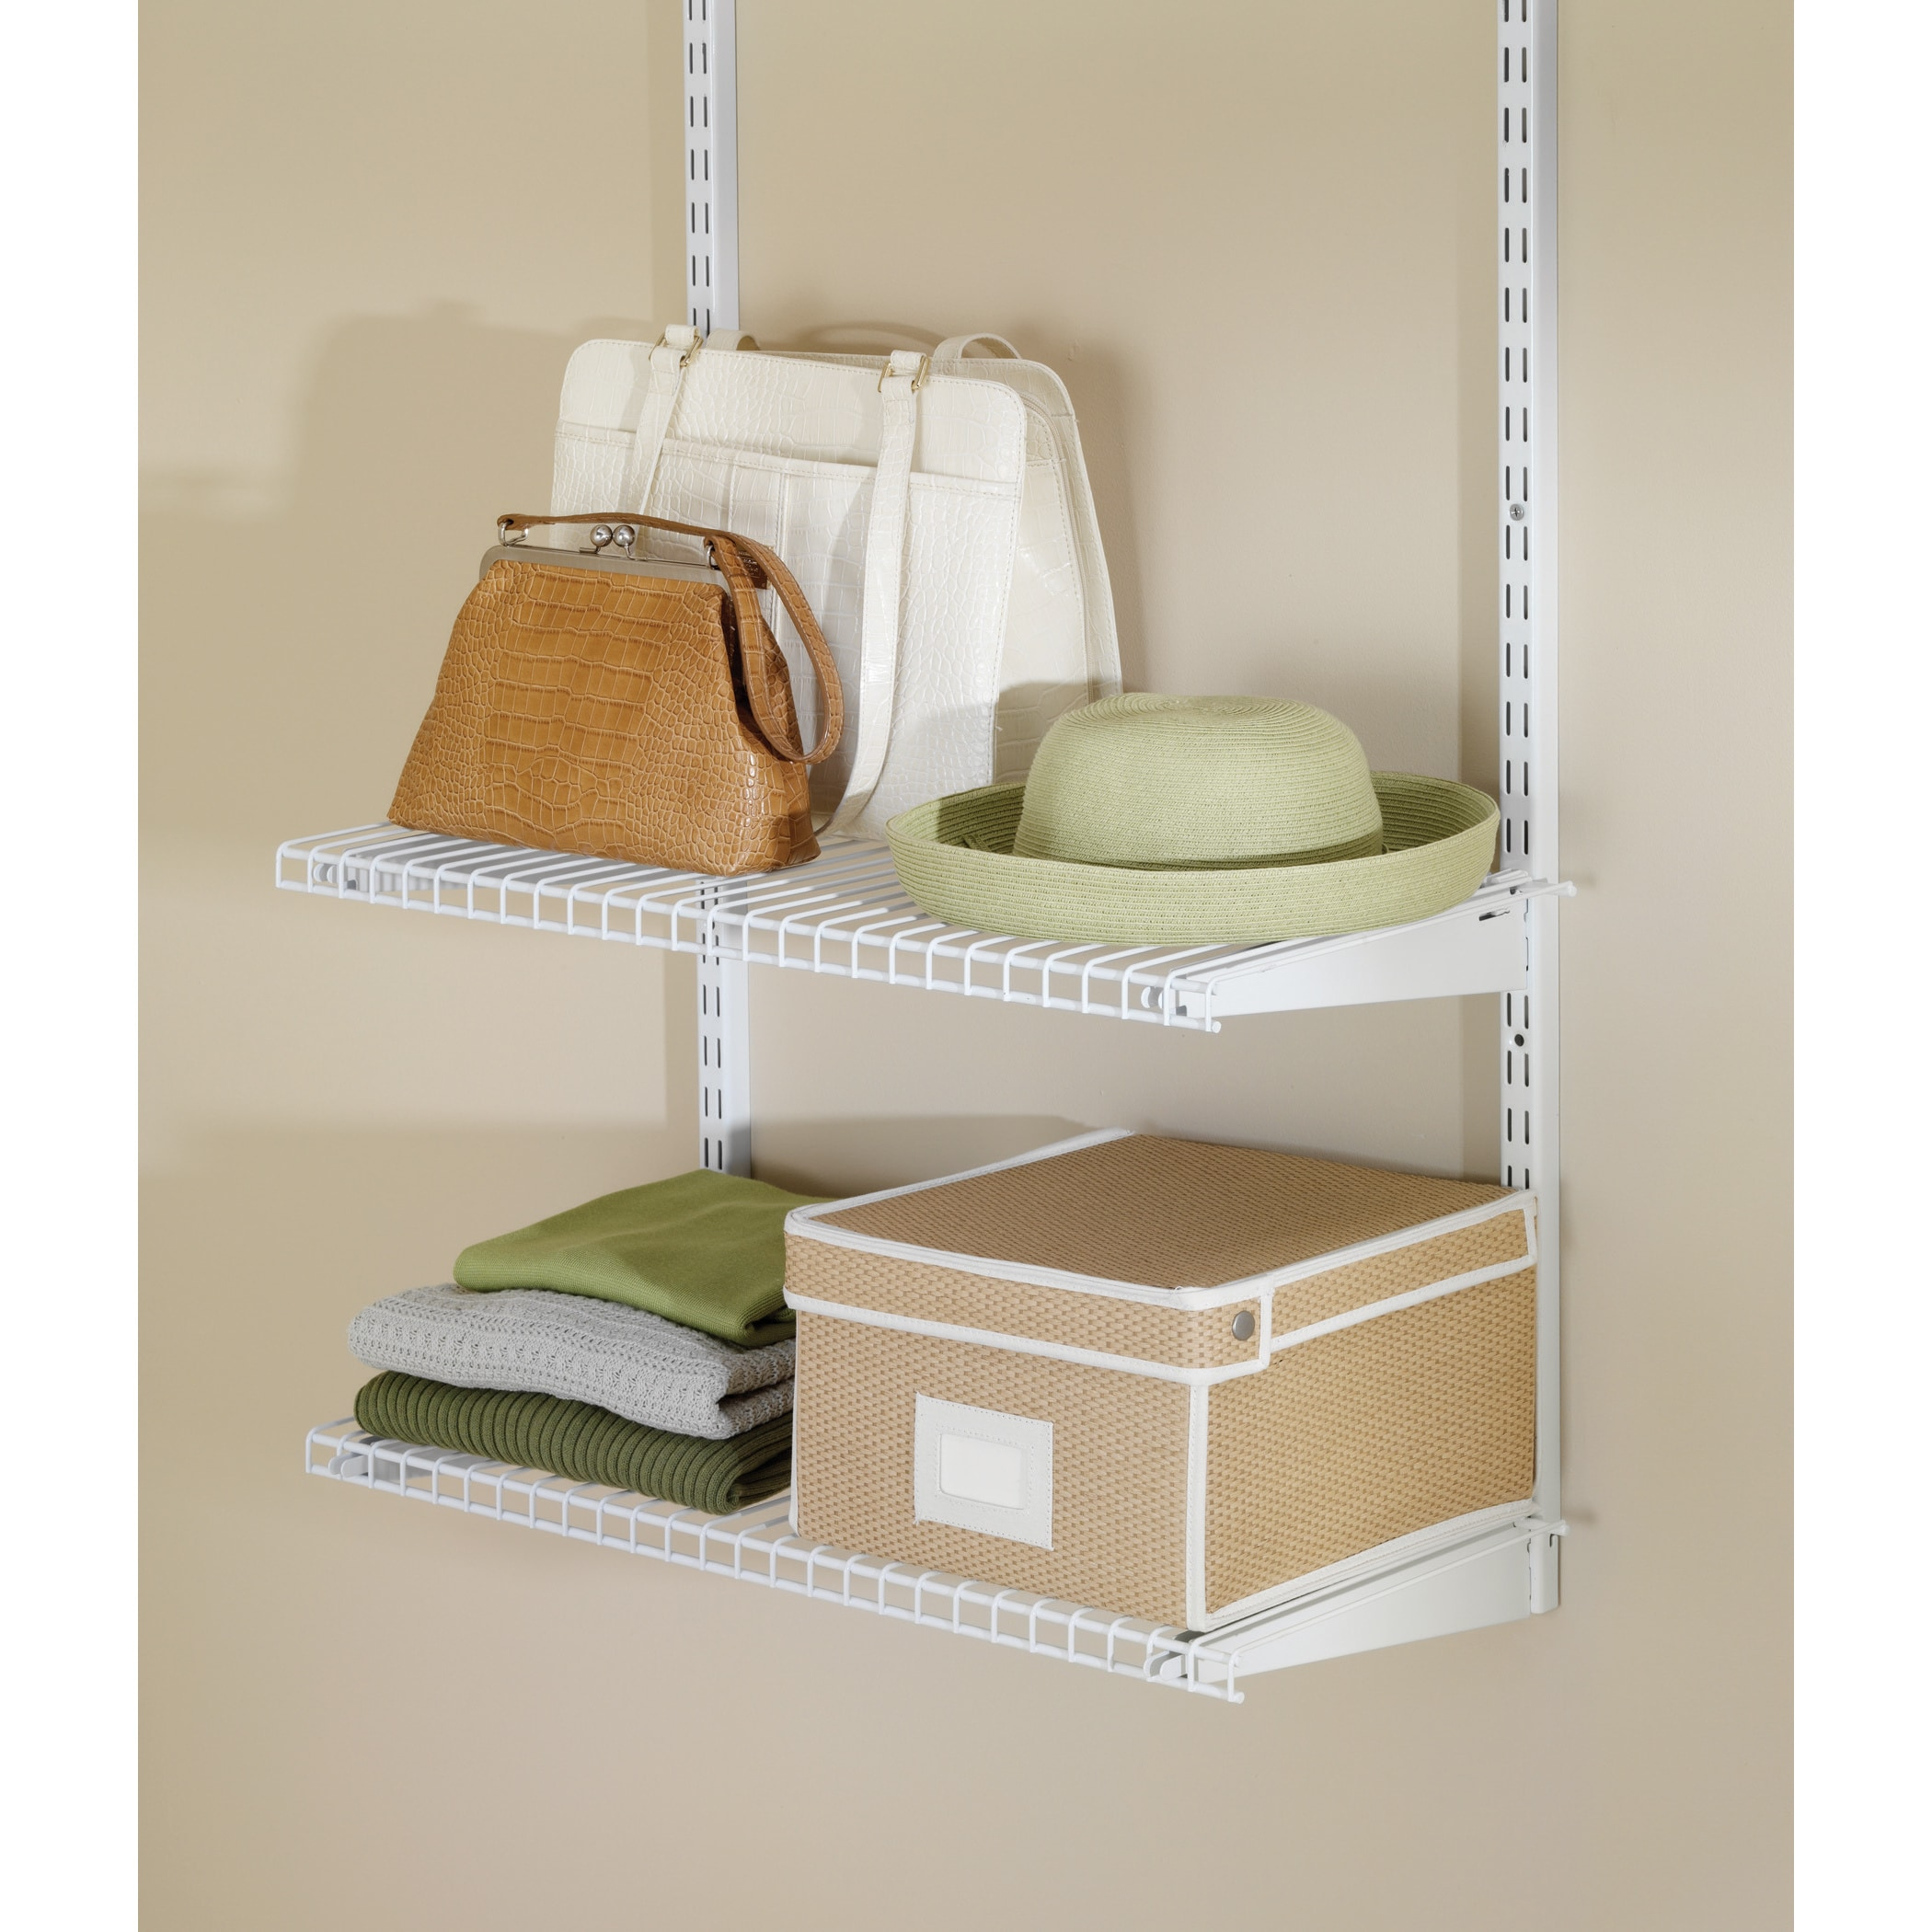 closets shelves own rail depot space home fasttrack outdoor tips shelving to customize sto rubbermaid your storage shed lowes closet sheds wondrous